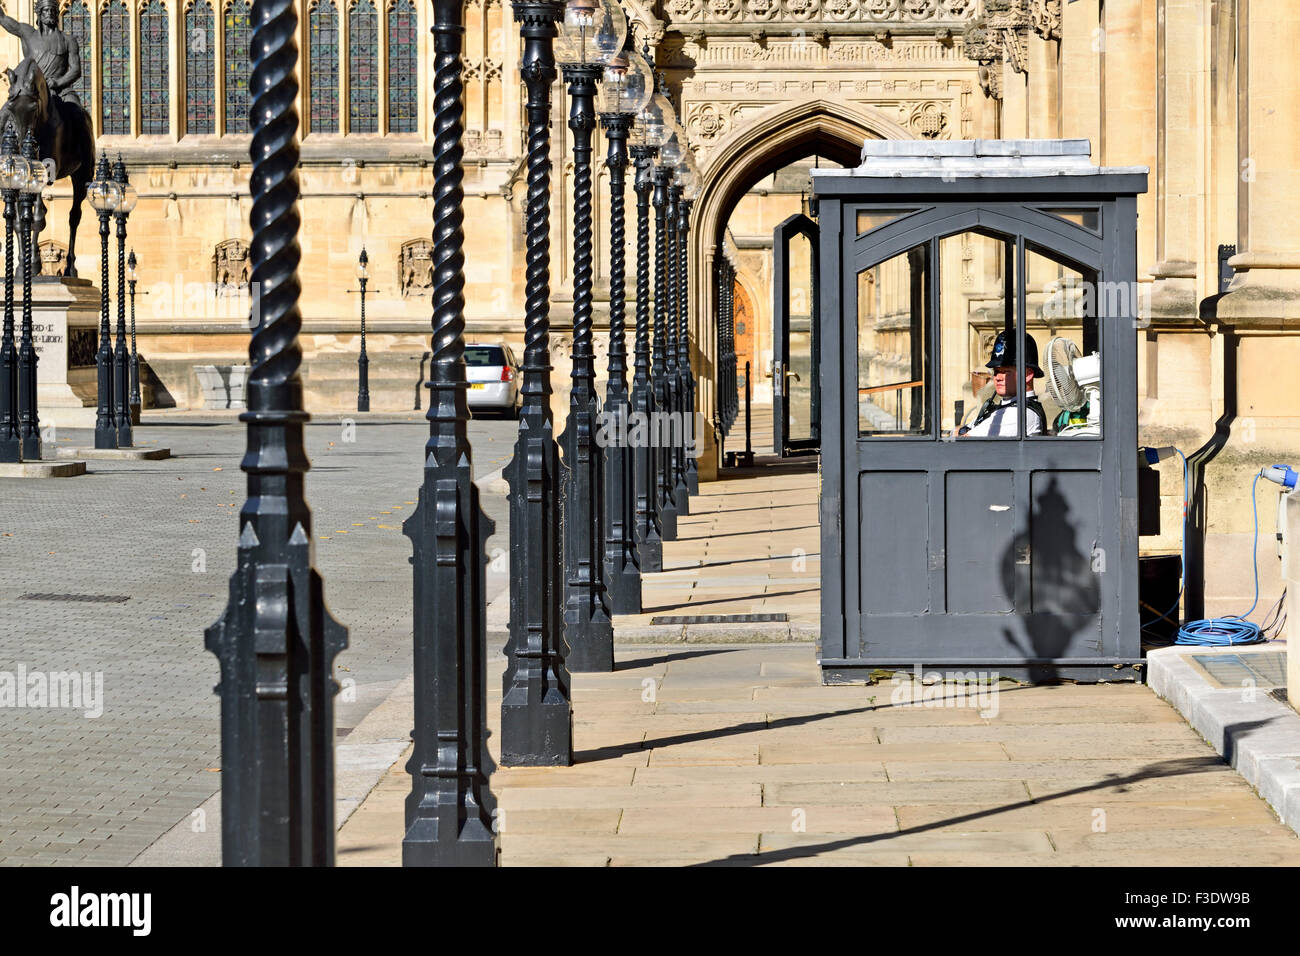 London, England, UK. Houses of Parliament, Westminster. Police officer in a booth in the car park - Stock Image